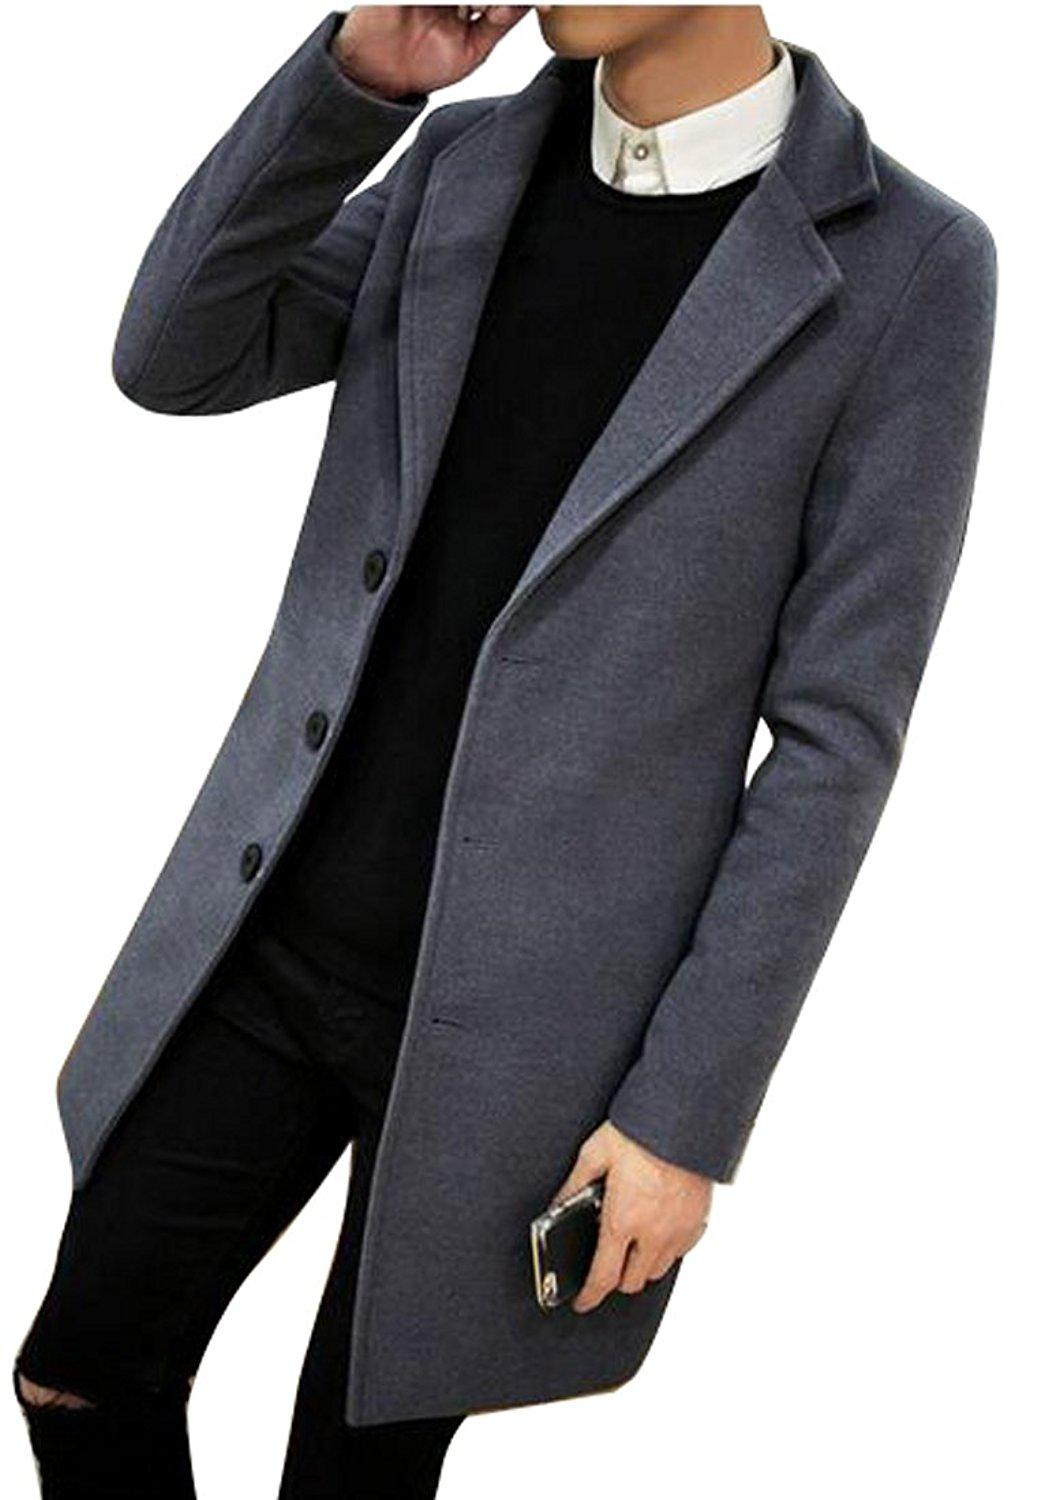 3bbcabed1200 Mens Casual Single Breasted Slim Fit Wool Blended Pea Coat Long Winter  Single Breasted Outerwear Mens